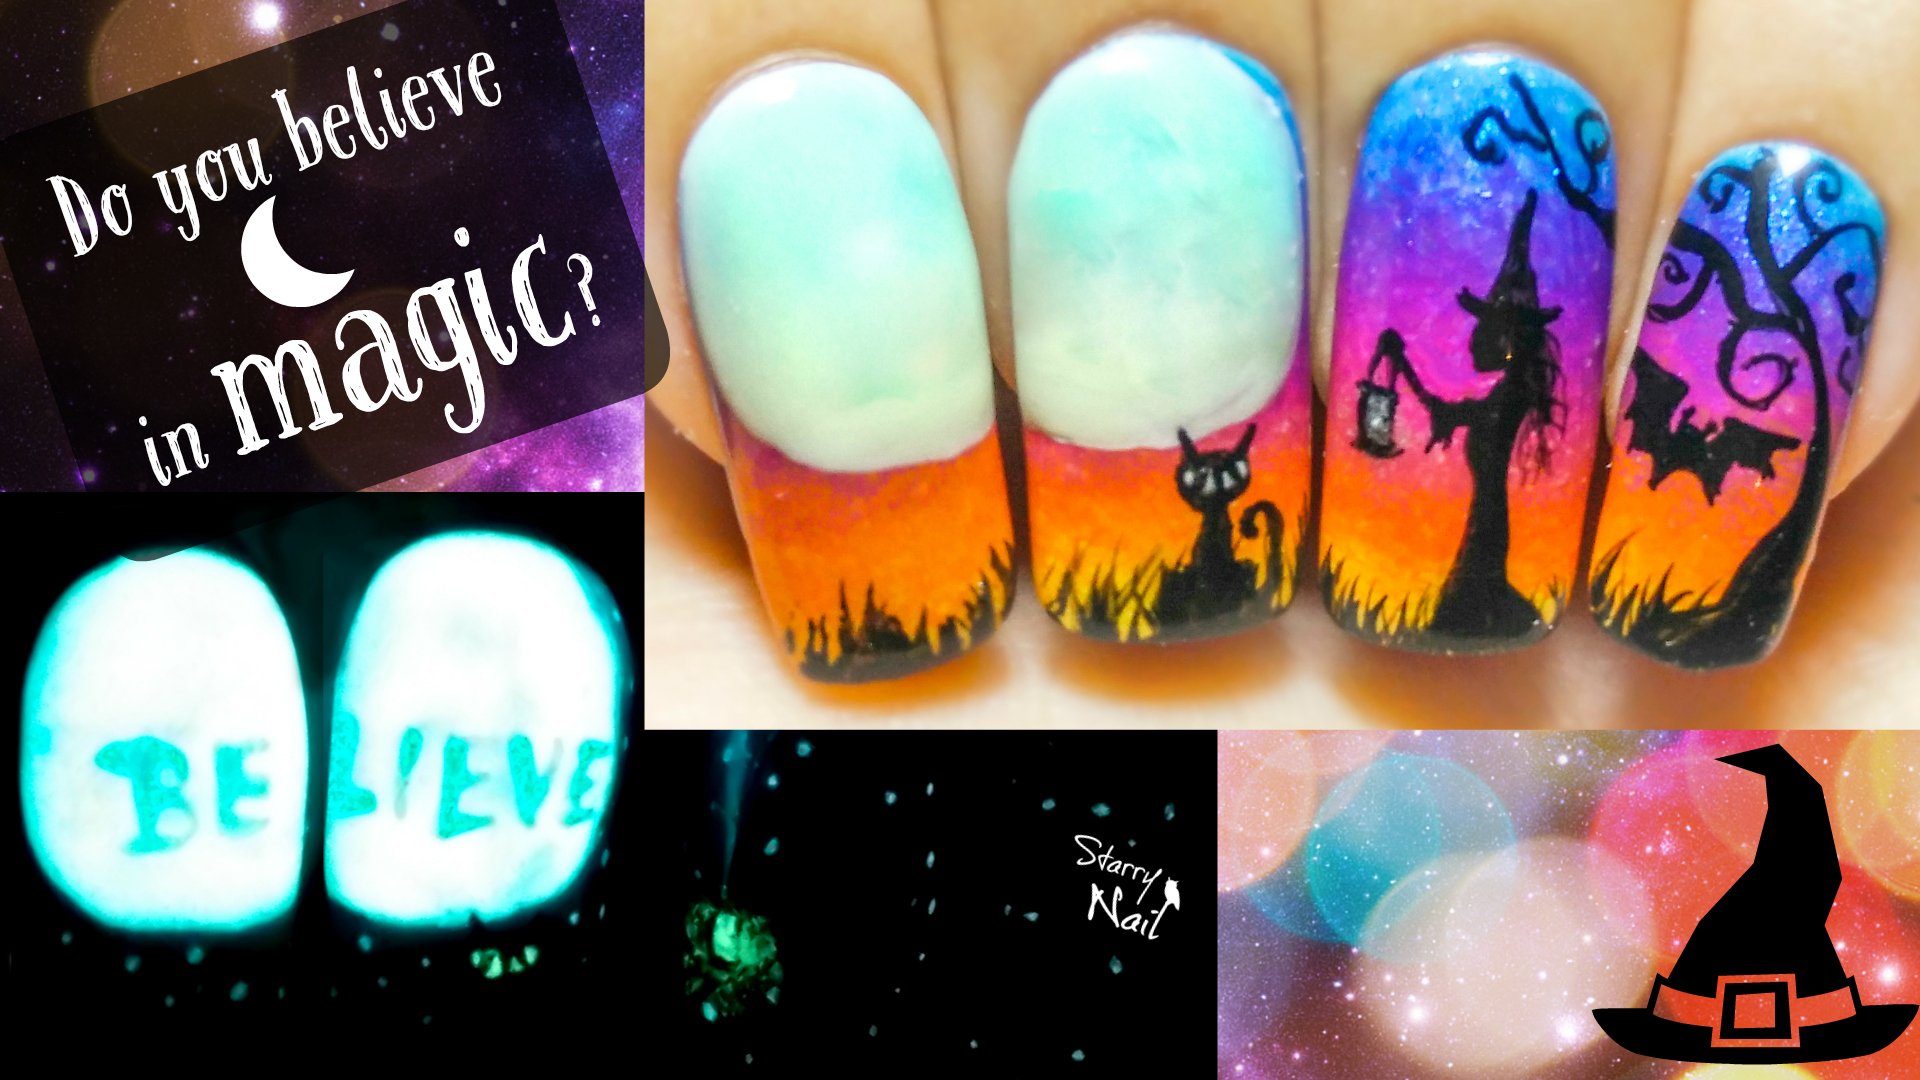 Do you believe in magic halloween witch glow in the dark halloween witch glow in the dark freehand nail art tutorial prinsesfo Images